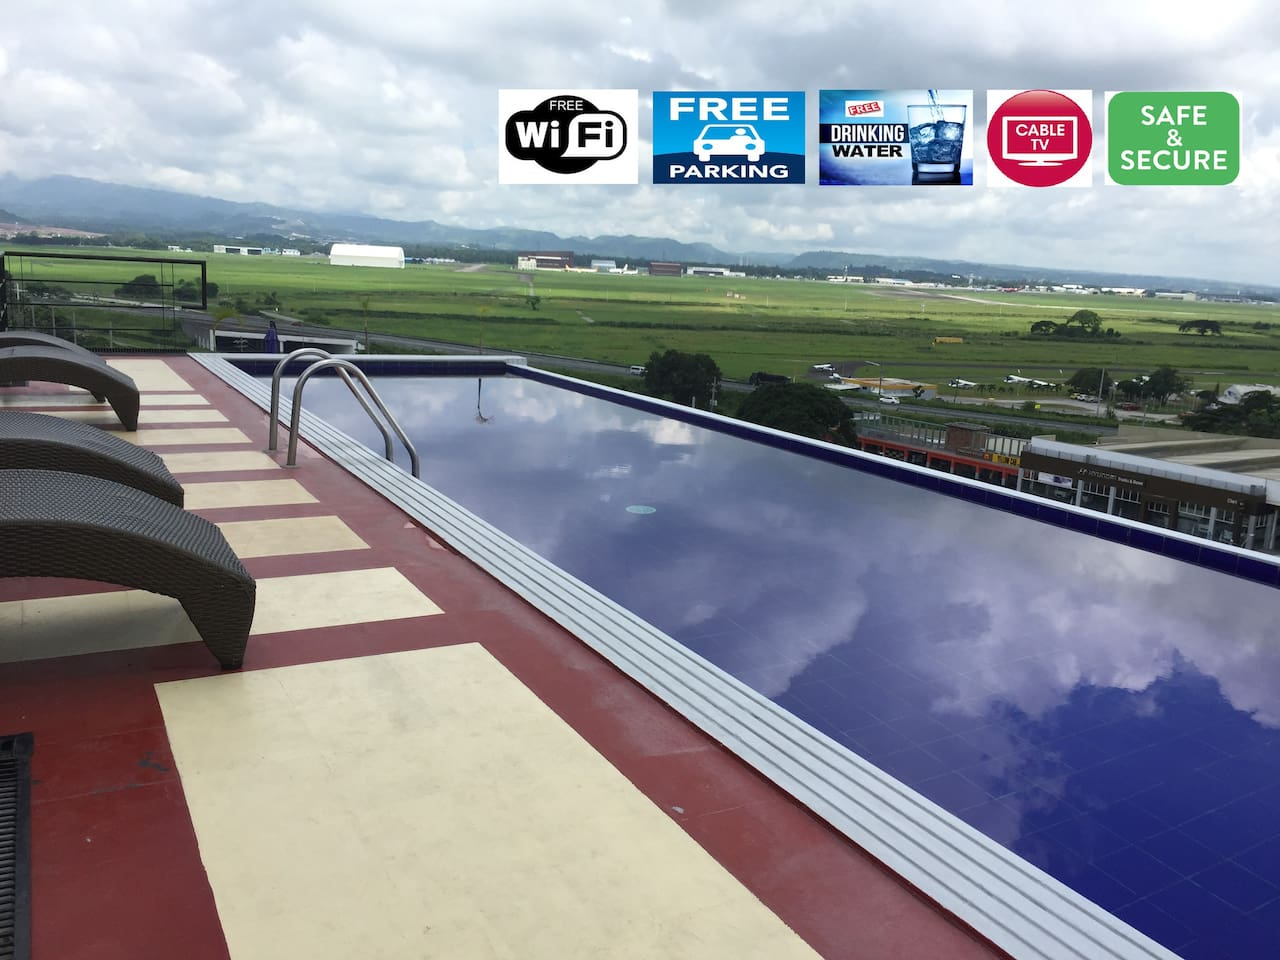 Relaxing roof deck infinity pool with great sunset views